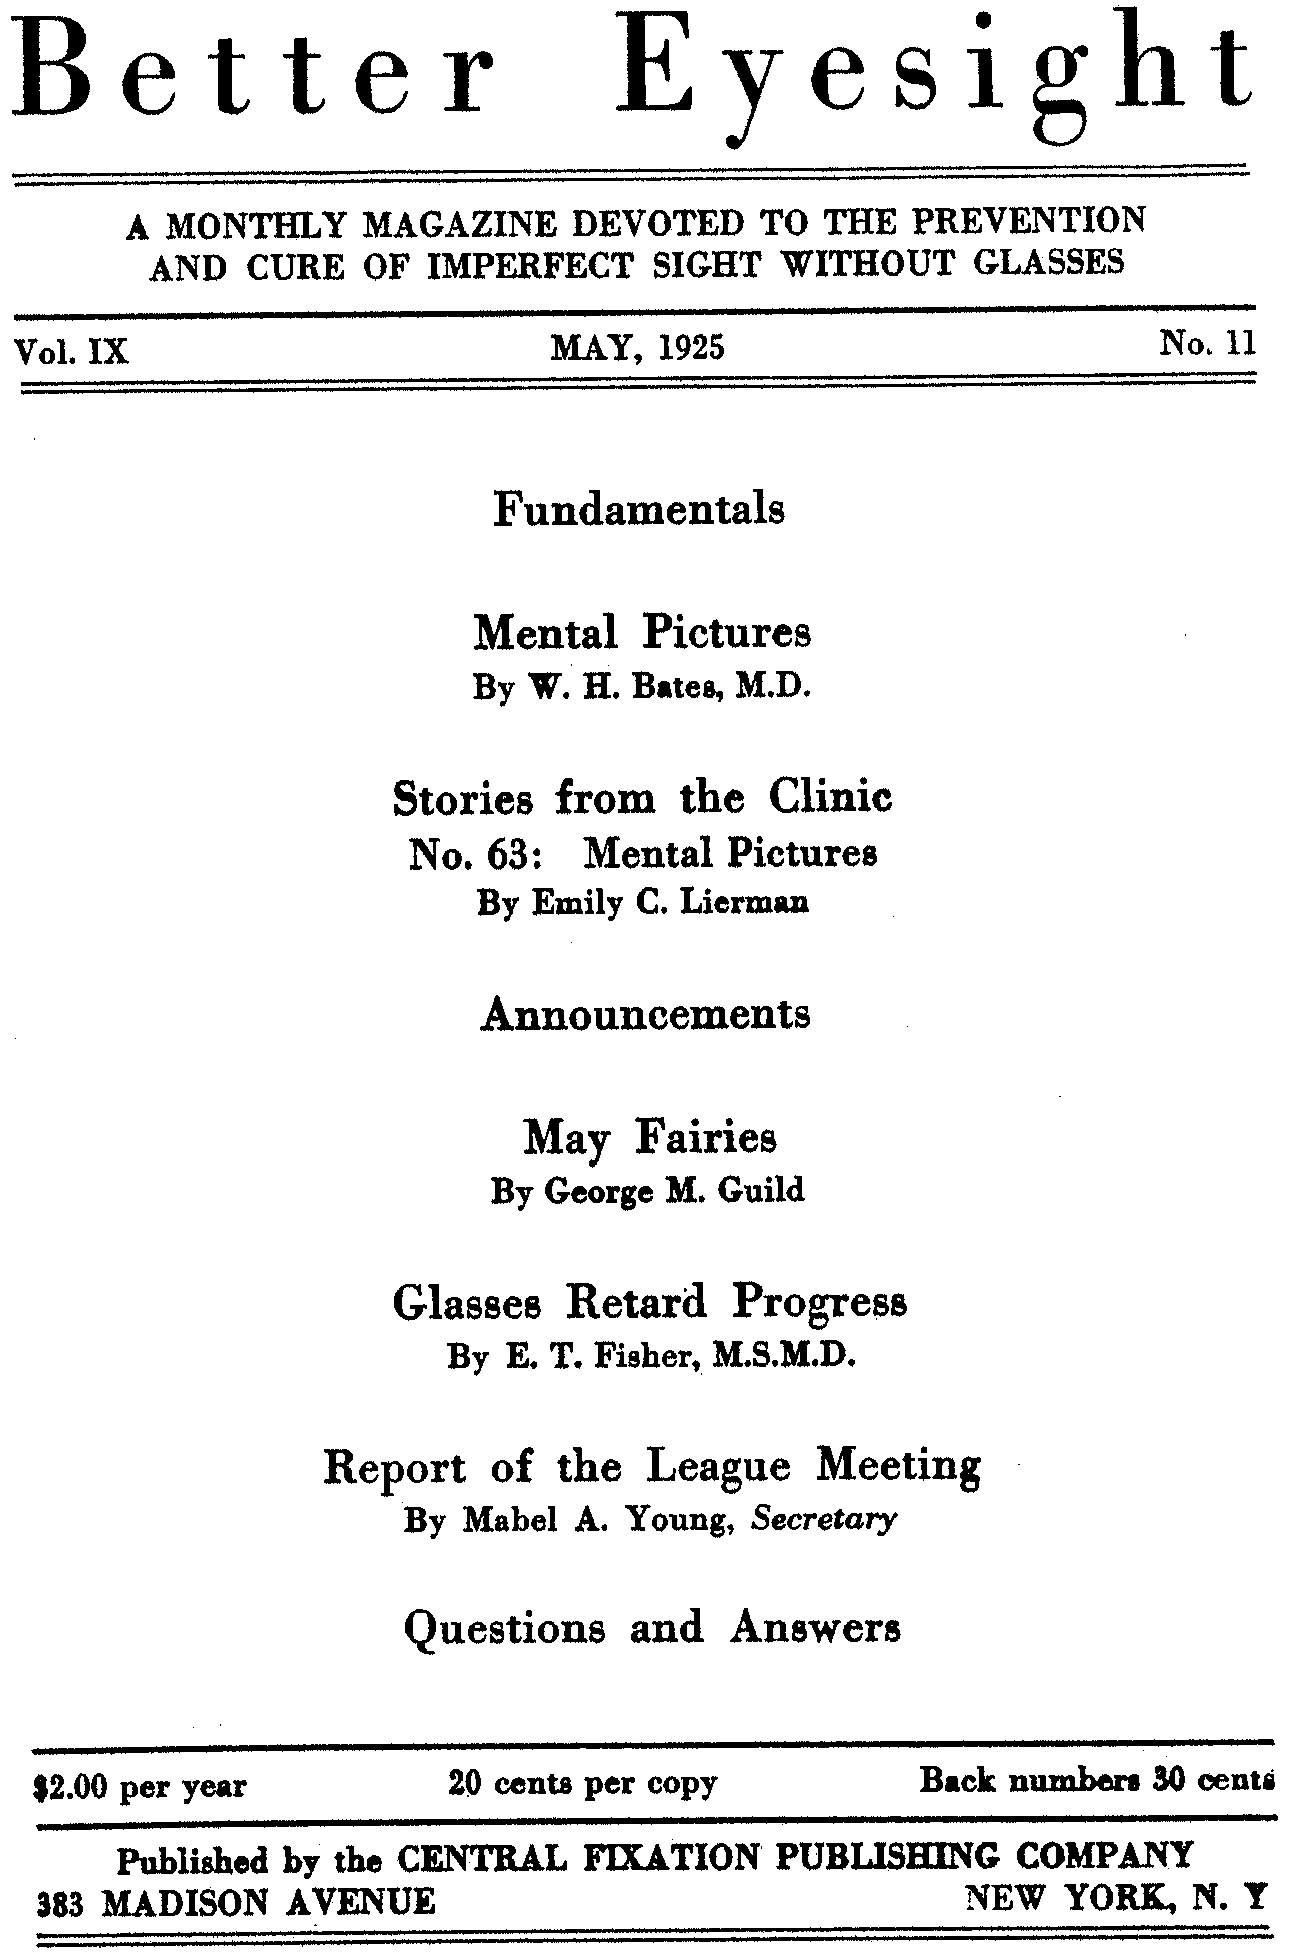 Better Eyesight - May 1925